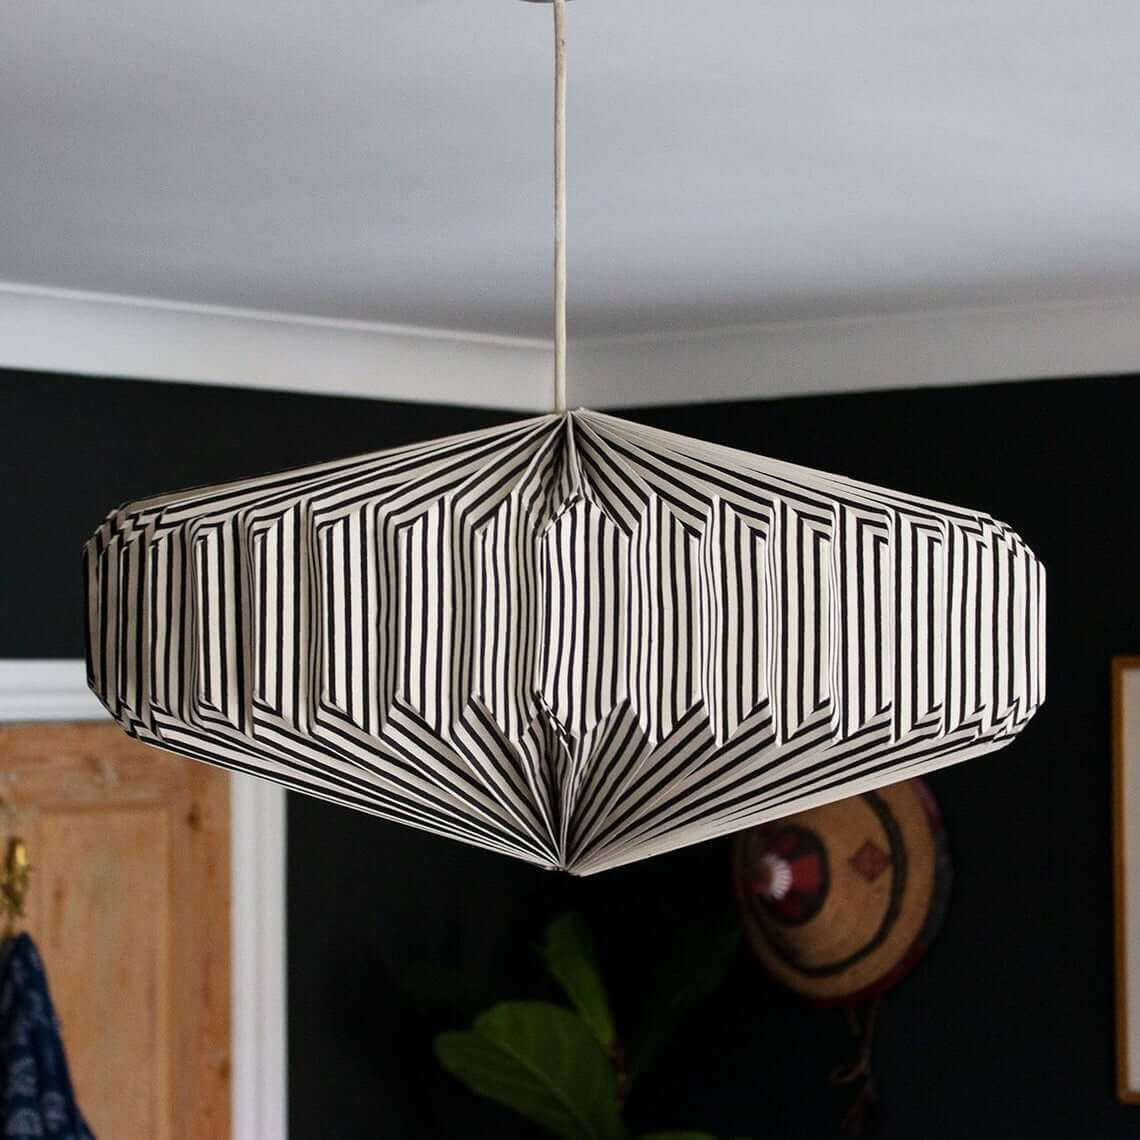 Deco-Styled Black and White Lamp Shade